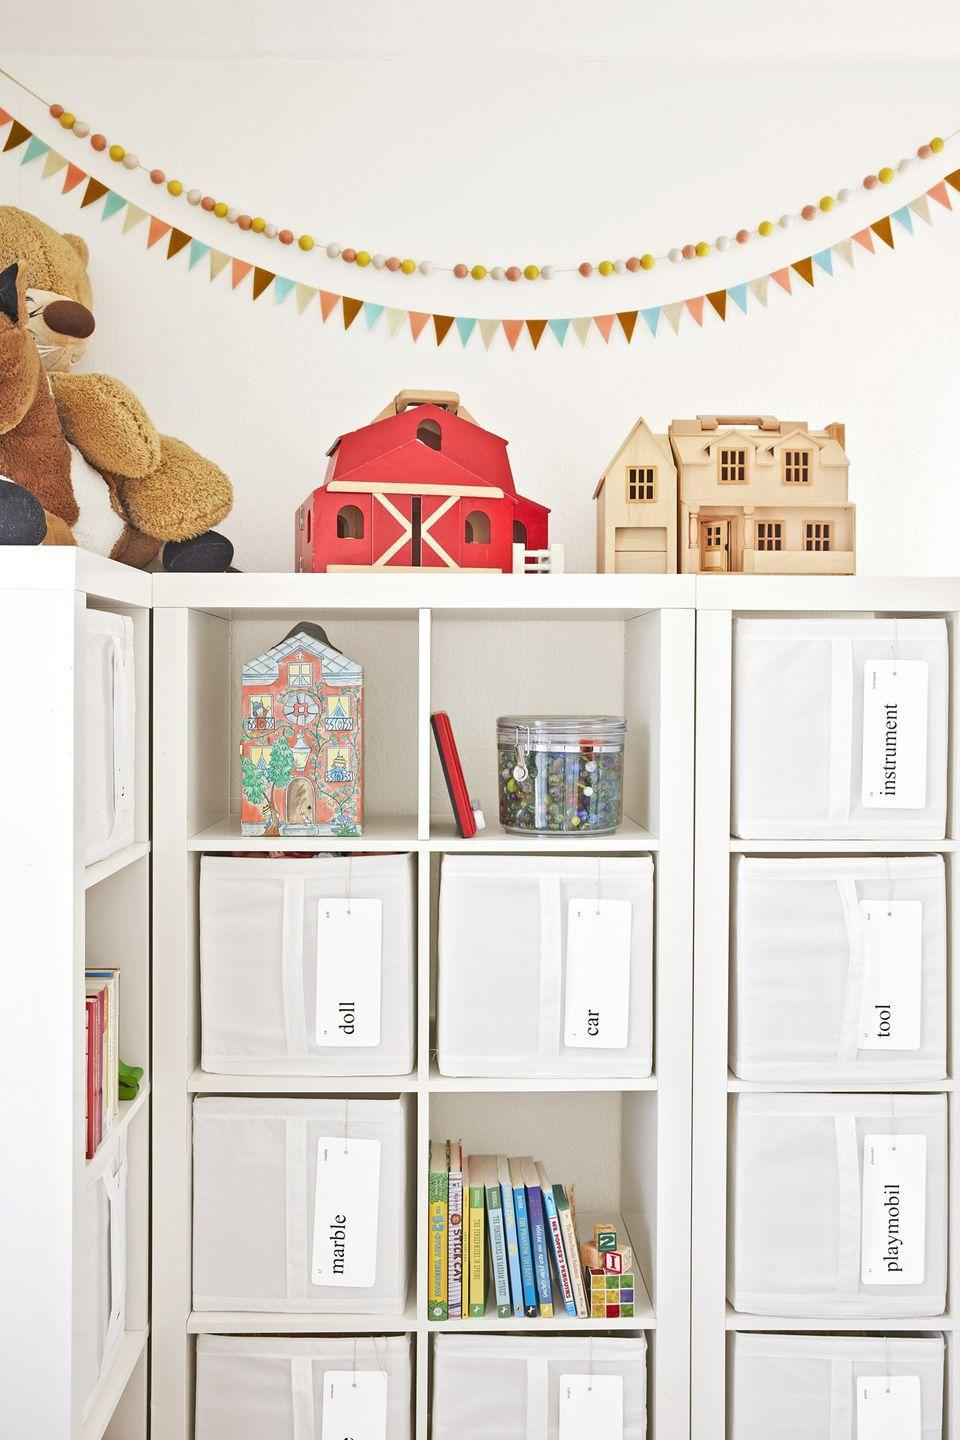 """<p>In this playroom, plain canvas toy bins get a cute and practical upgrade with hanging <a href=""""https://go.redirectingat.com?id=74968X1596630&url=https%3A%2F%2Fwww.etsy.com%2Fshop%2Fhaystackmercantile&sref=https%3A%2F%2Fwww.redbookmag.com%2Fhome%2Fg36014277%2Ftoy-organizer-ideas%2F"""" rel=""""nofollow noopener"""" target=""""_blank"""" data-ylk=""""slk:flashcard labels"""" class=""""link rapid-noclick-resp"""">flashcard labels</a> (marked """"marble,"""" """"doll,"""" """"train,"""" """"army,"""" and so forth).<br></p><p><sup><a class=""""link rapid-noclick-resp"""" href=""""https://www.amazon.com/AmazonBasics-Foldable-Storage-Cubes-6-Pack/dp/B0711RQMNF/ref=sr_1_6?tag=syn-yahoo-20&ascsubtag=%5Bartid%7C10063.g.36014277%5Bsrc%7Cyahoo-us"""" rel=""""nofollow noopener"""" target=""""_blank"""" data-ylk=""""slk:SHOP CANVAS BINS"""">SHOP CANVAS BINS</a></sup><br></p>"""